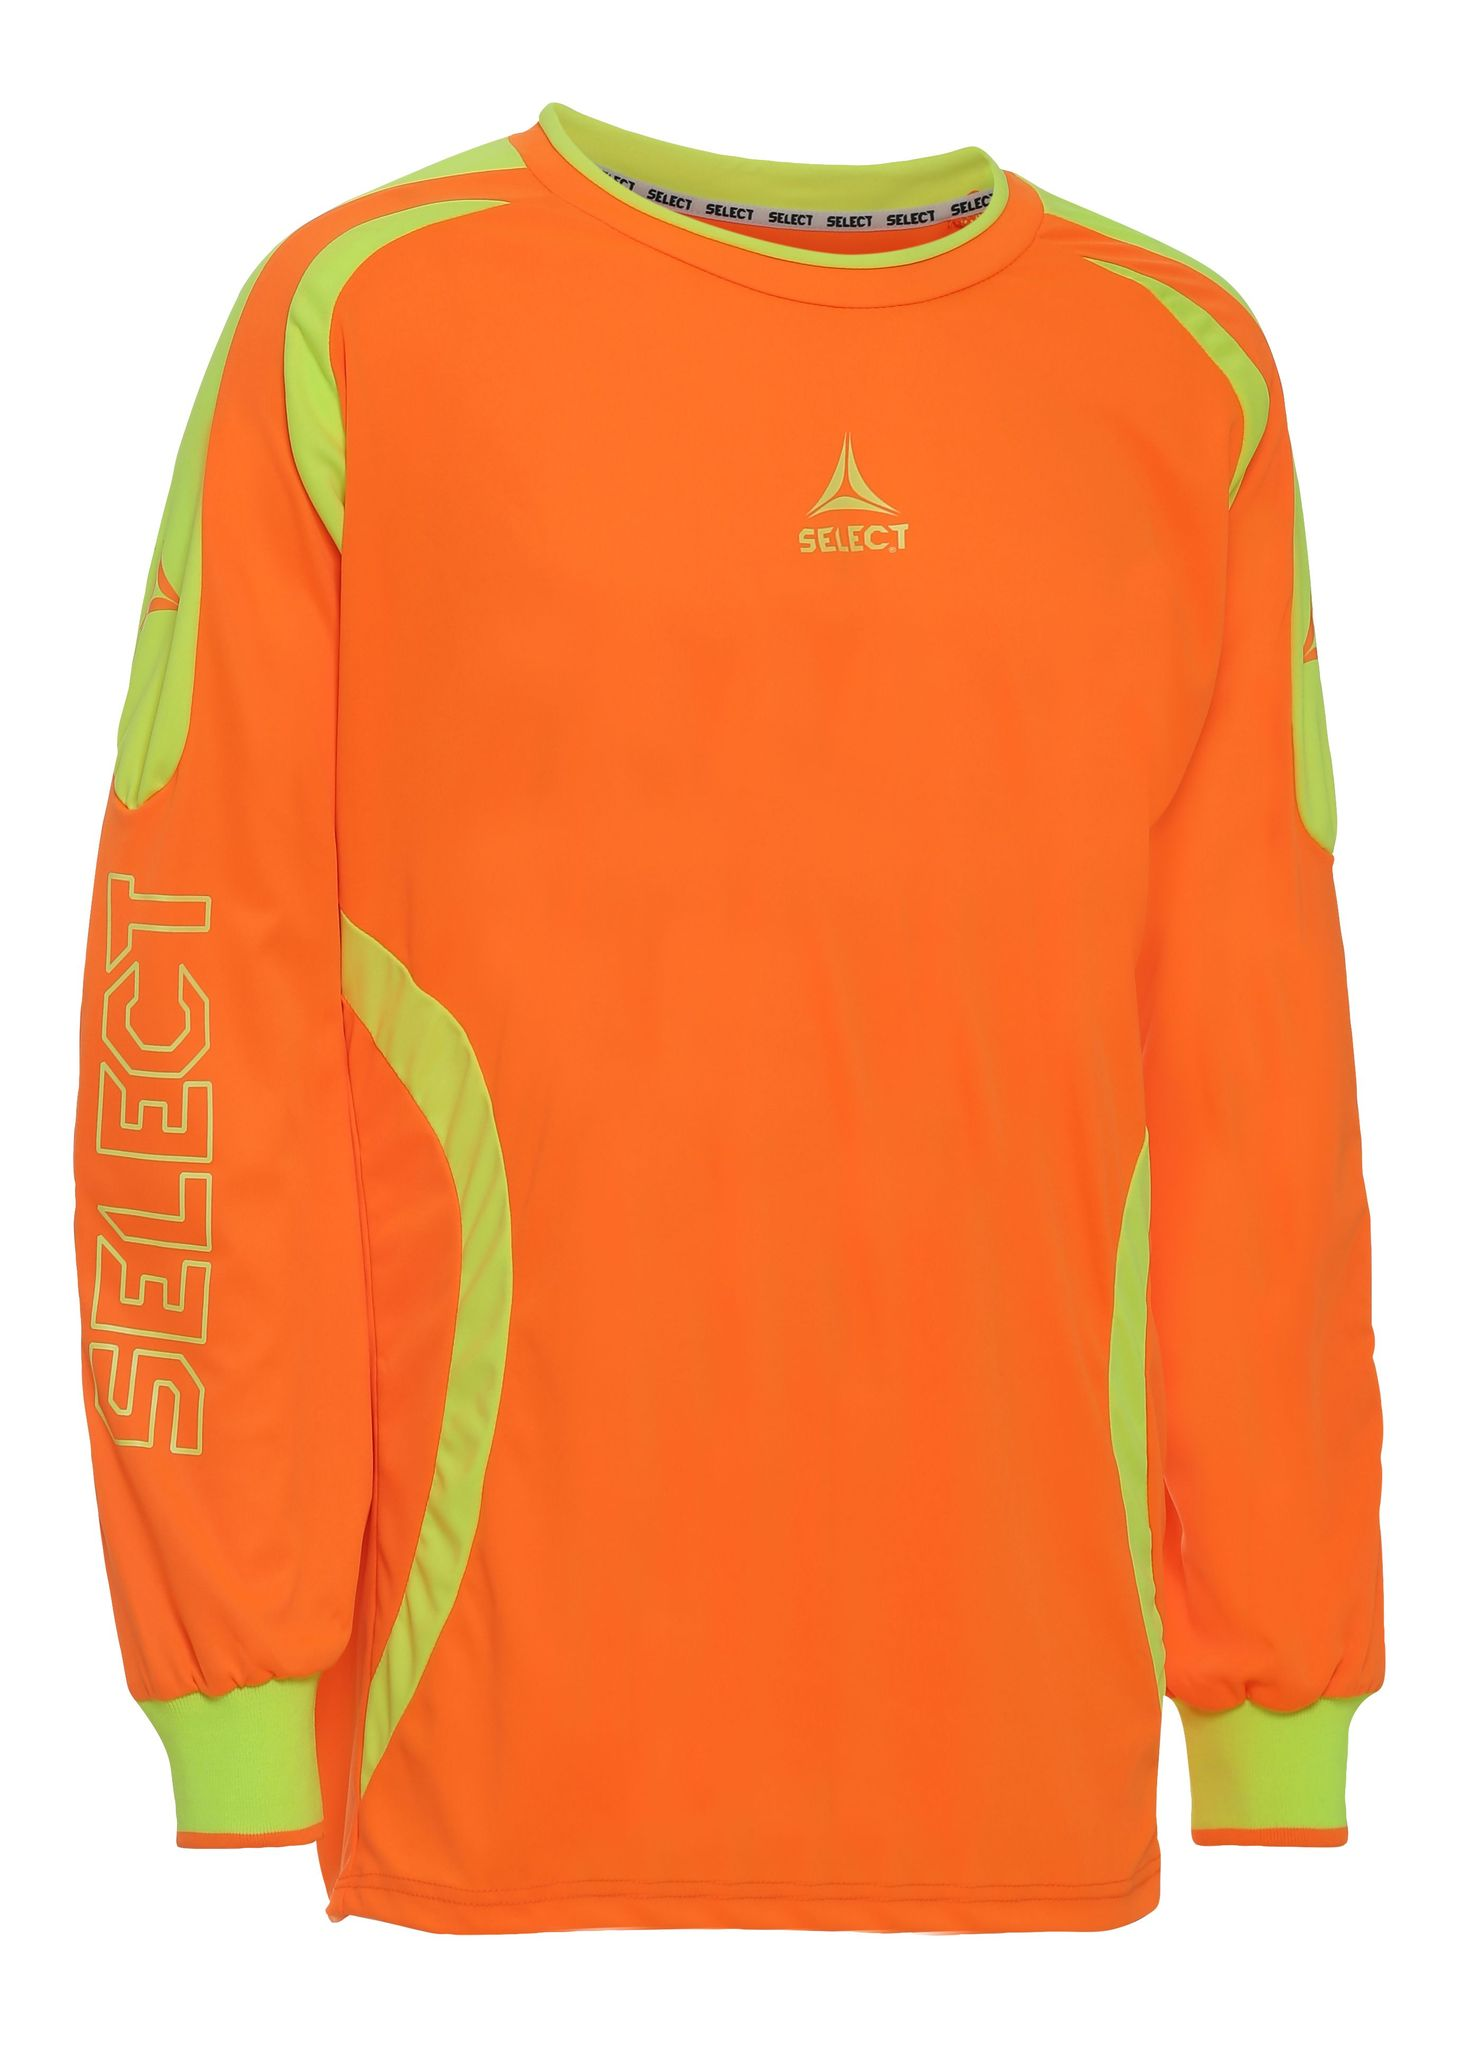 Ohio LS Goalkeeper Jersey